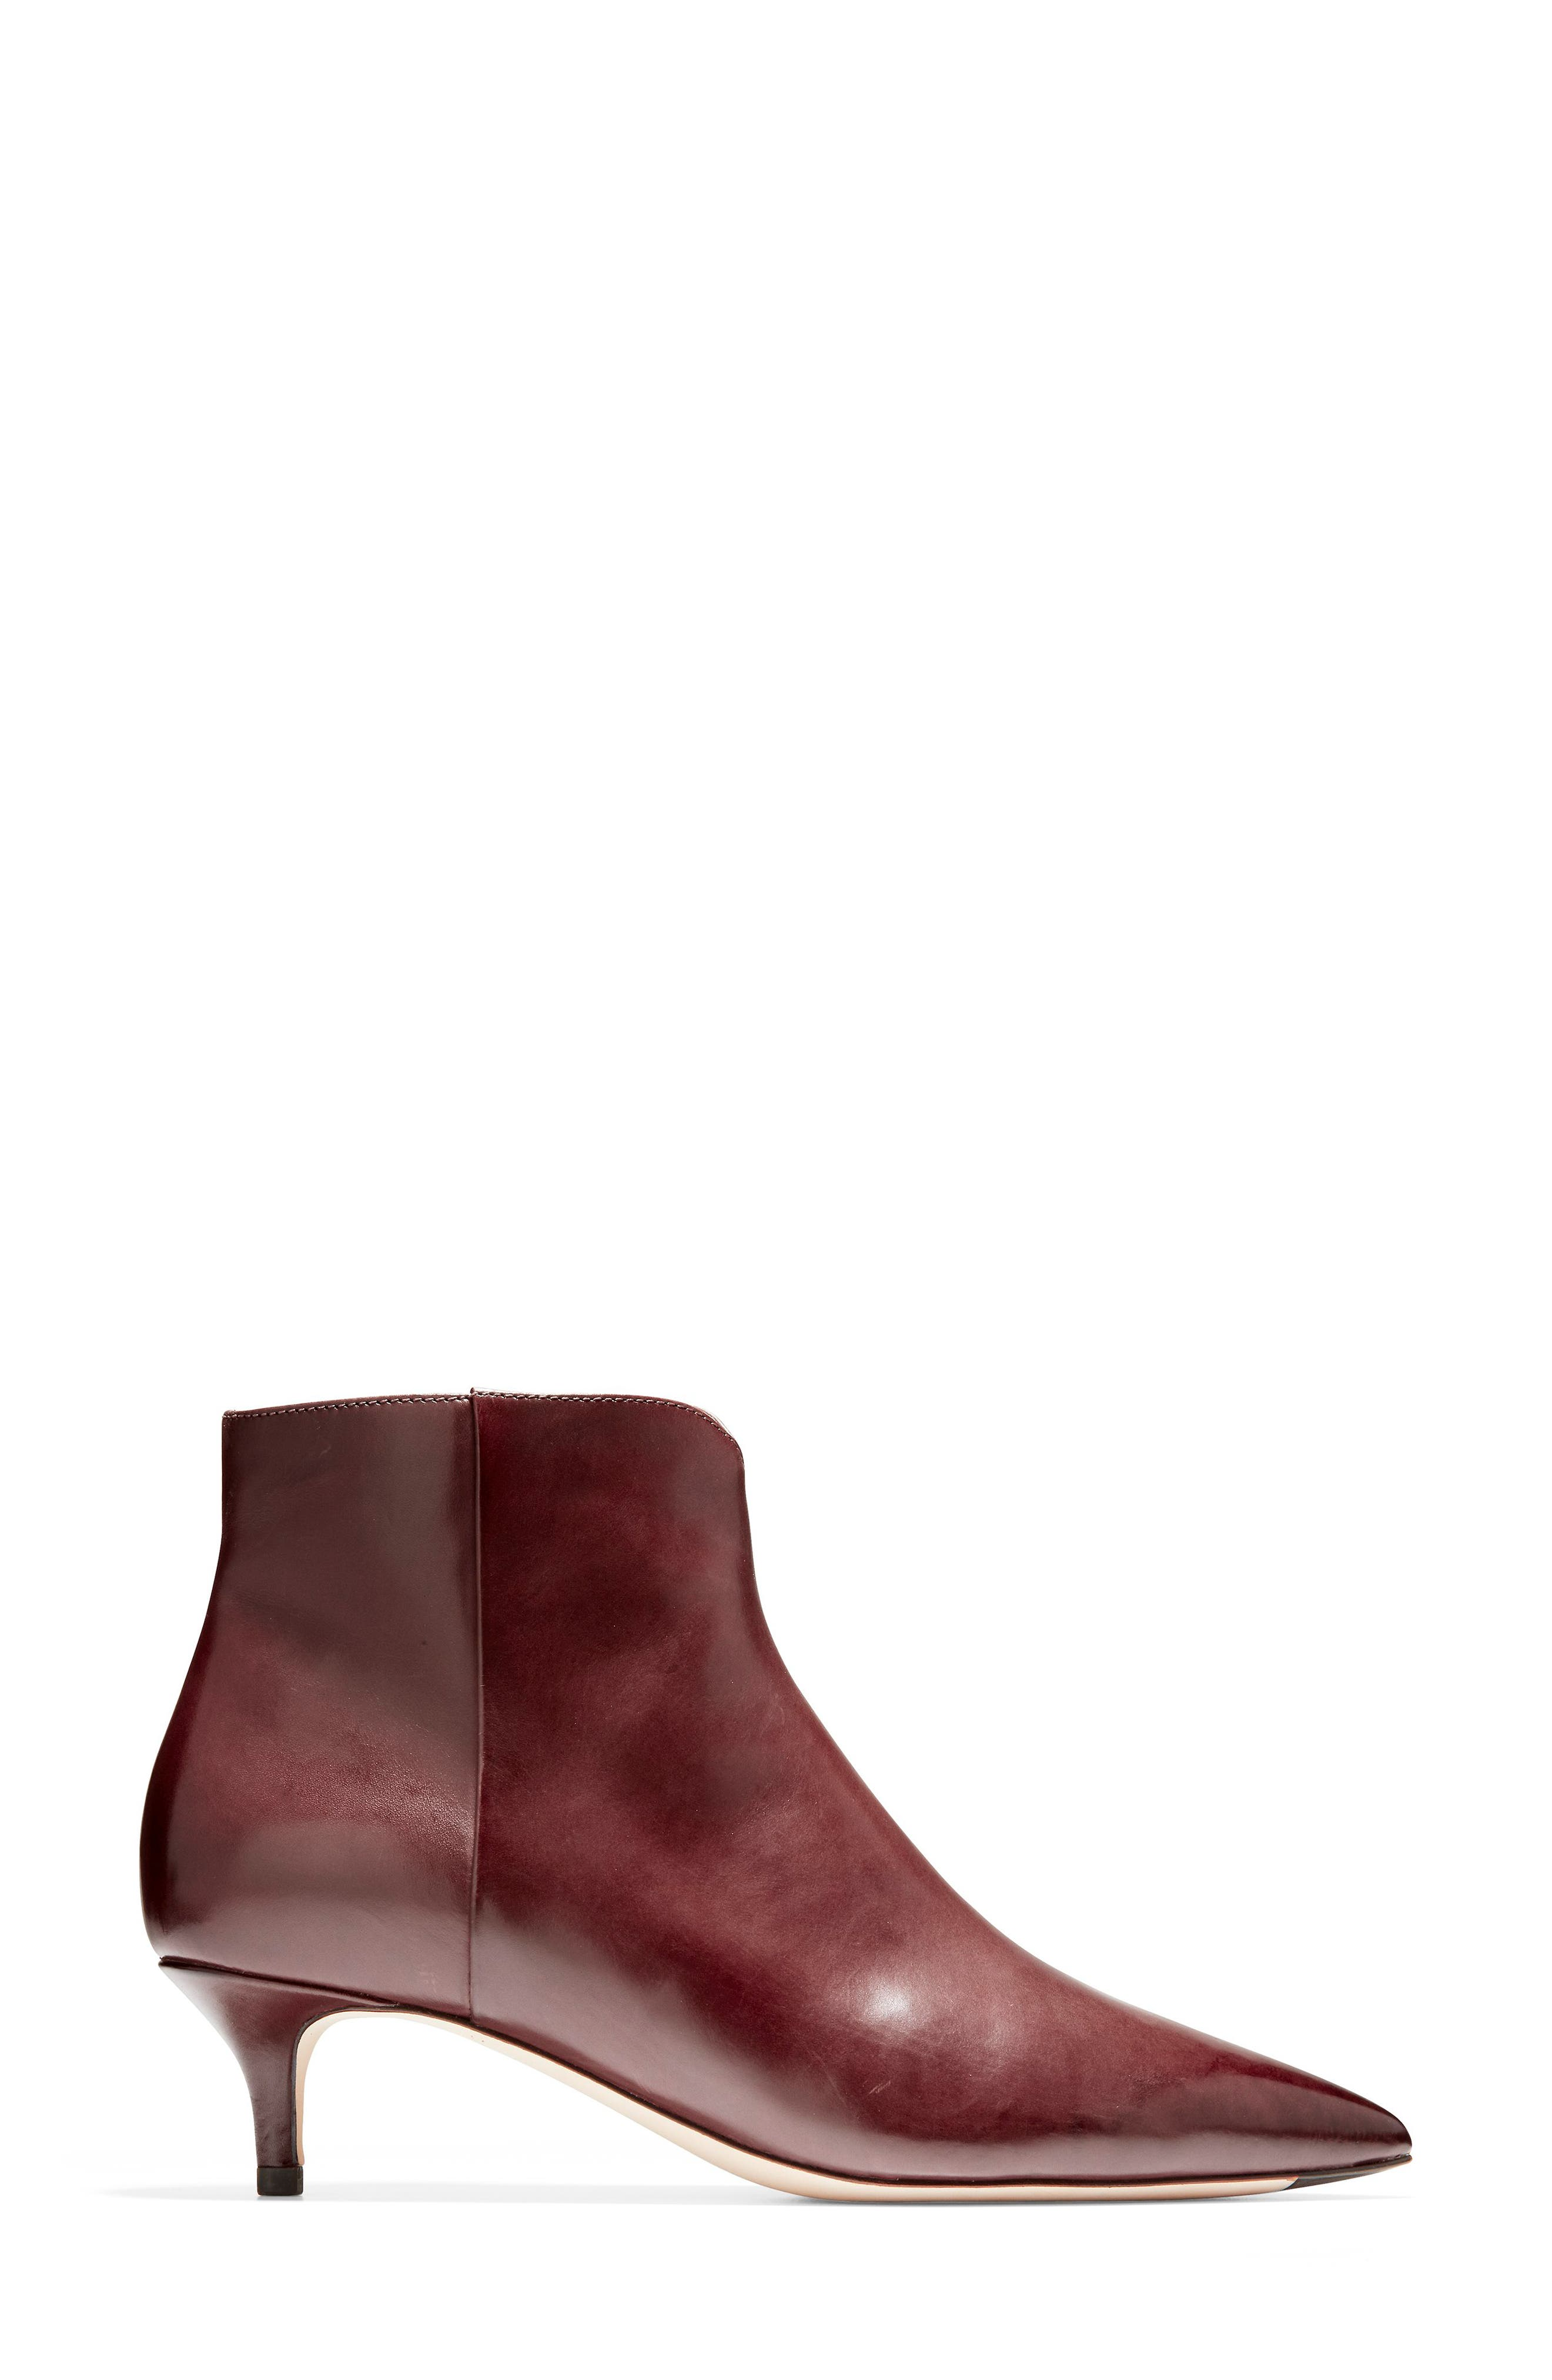 Vesta Bootie,                             Alternate thumbnail 3, color,                             CORDOVAN LEATHER